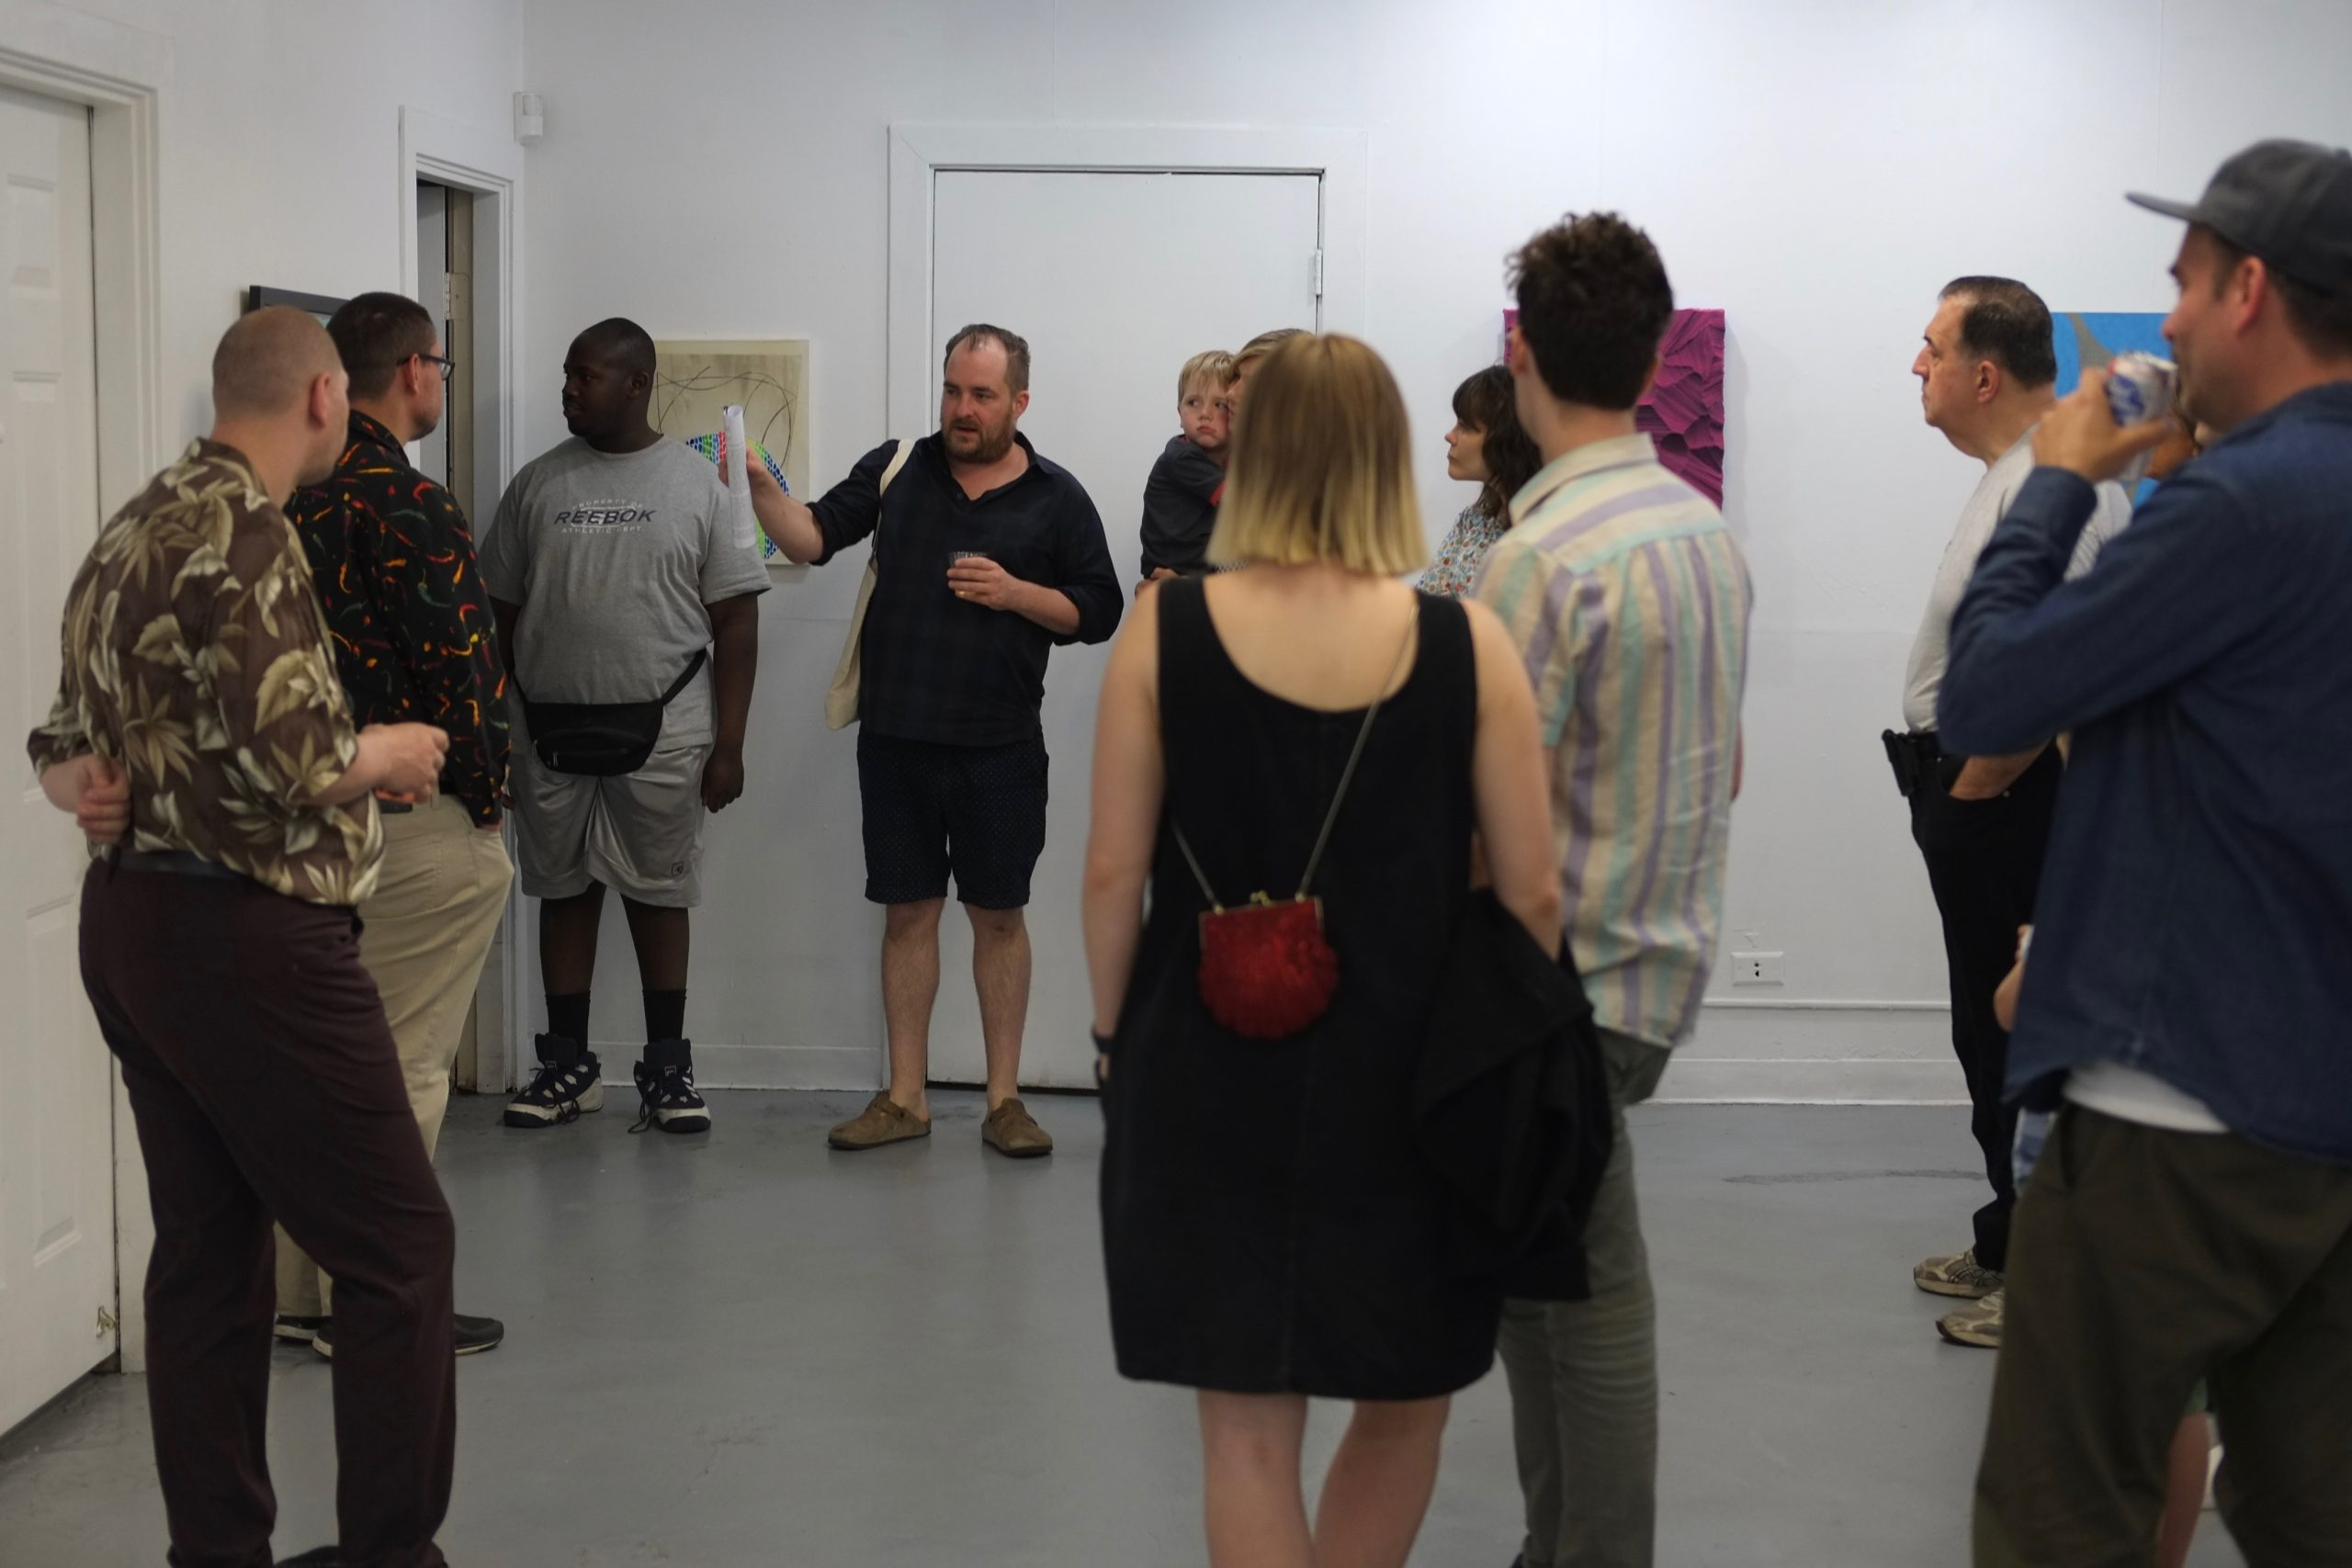 Cocurator and Arts of Life executive board member Andrew Rafacz gives a tour of the show.